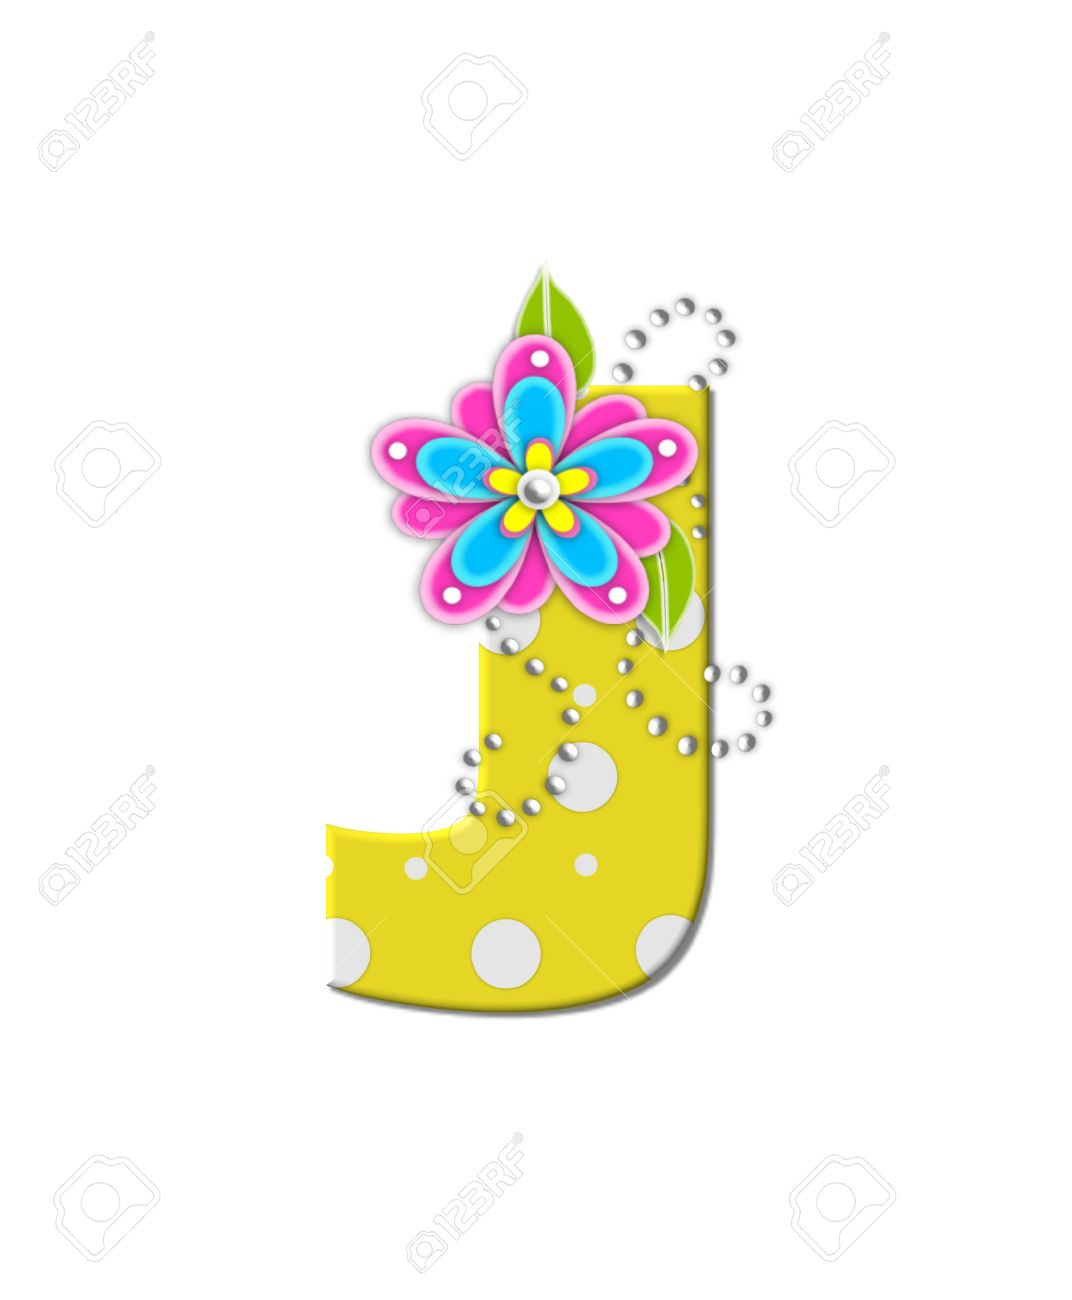 The Letter J In The Alphabet Set Bonny Blooms Is Yellow With